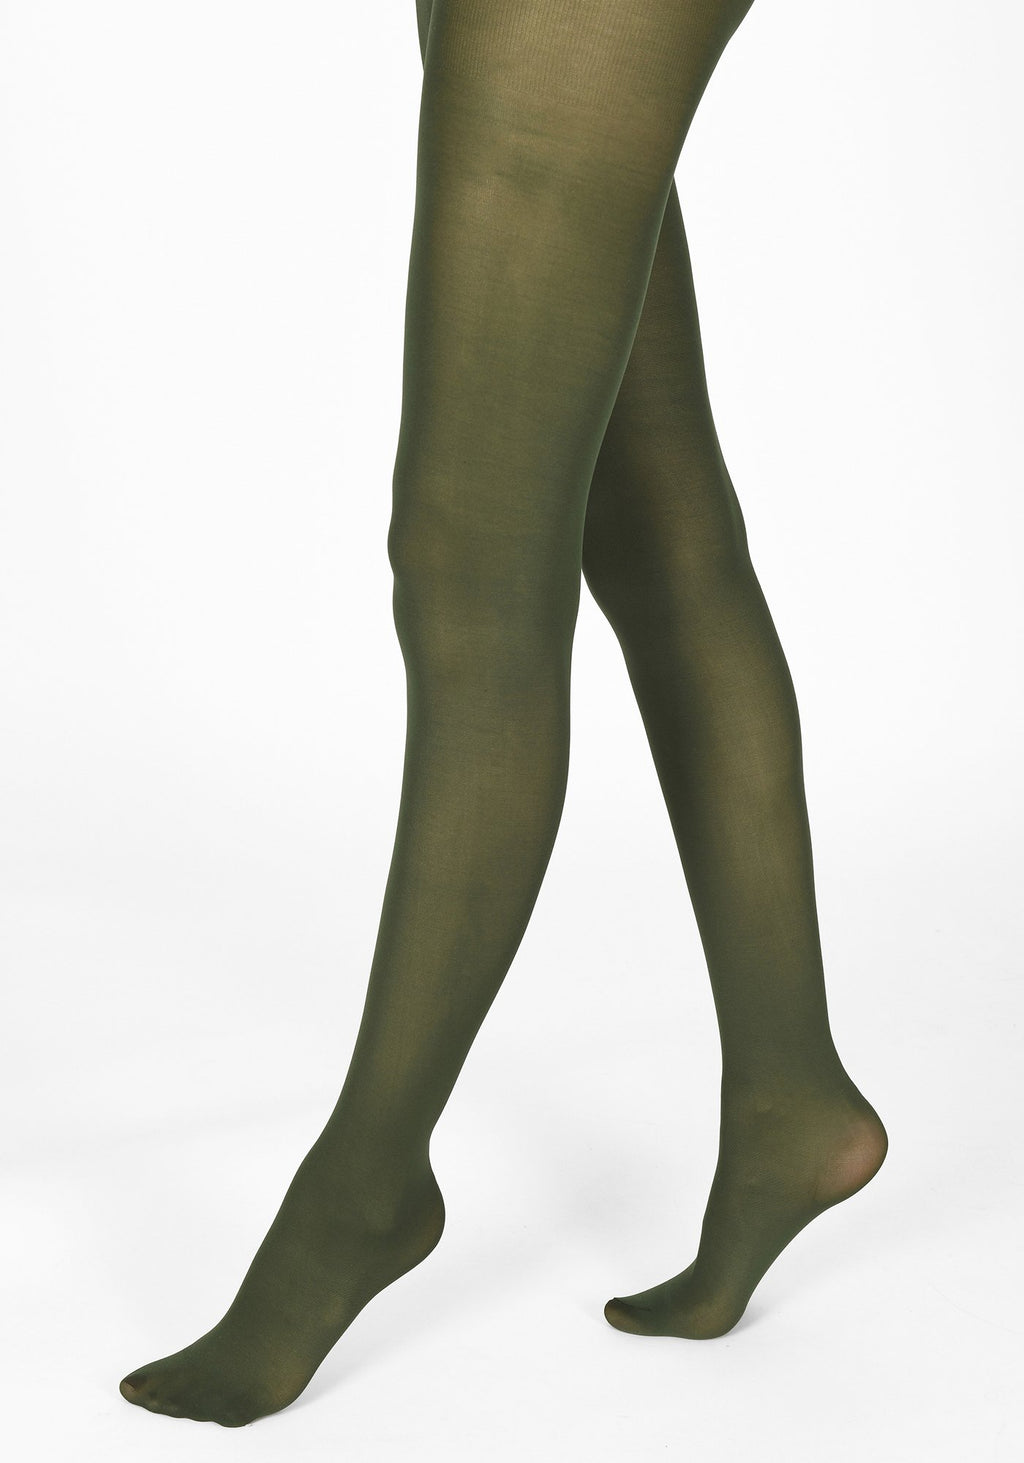 bottle green tights 40 denier 1